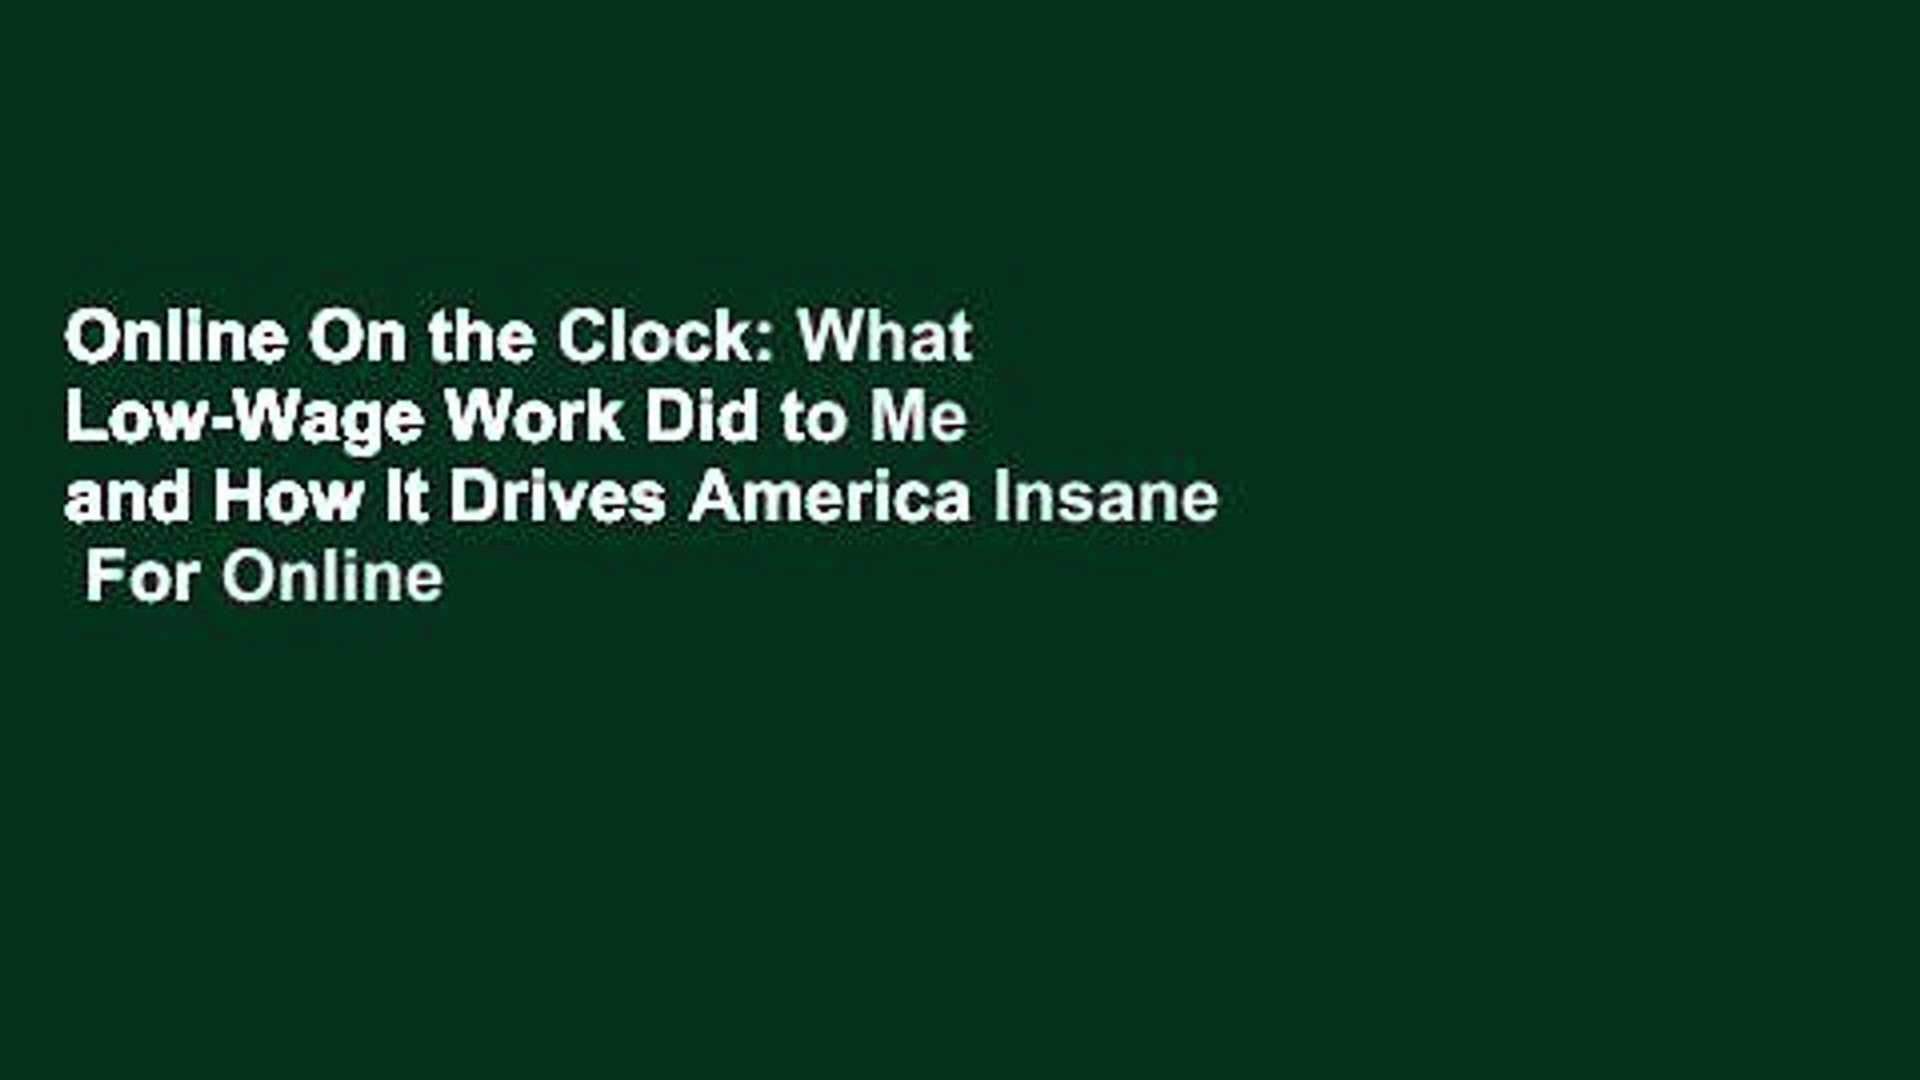 Online On the Clock: What Low-Wage Work Did to Me and How It Drives America Insane  For Online